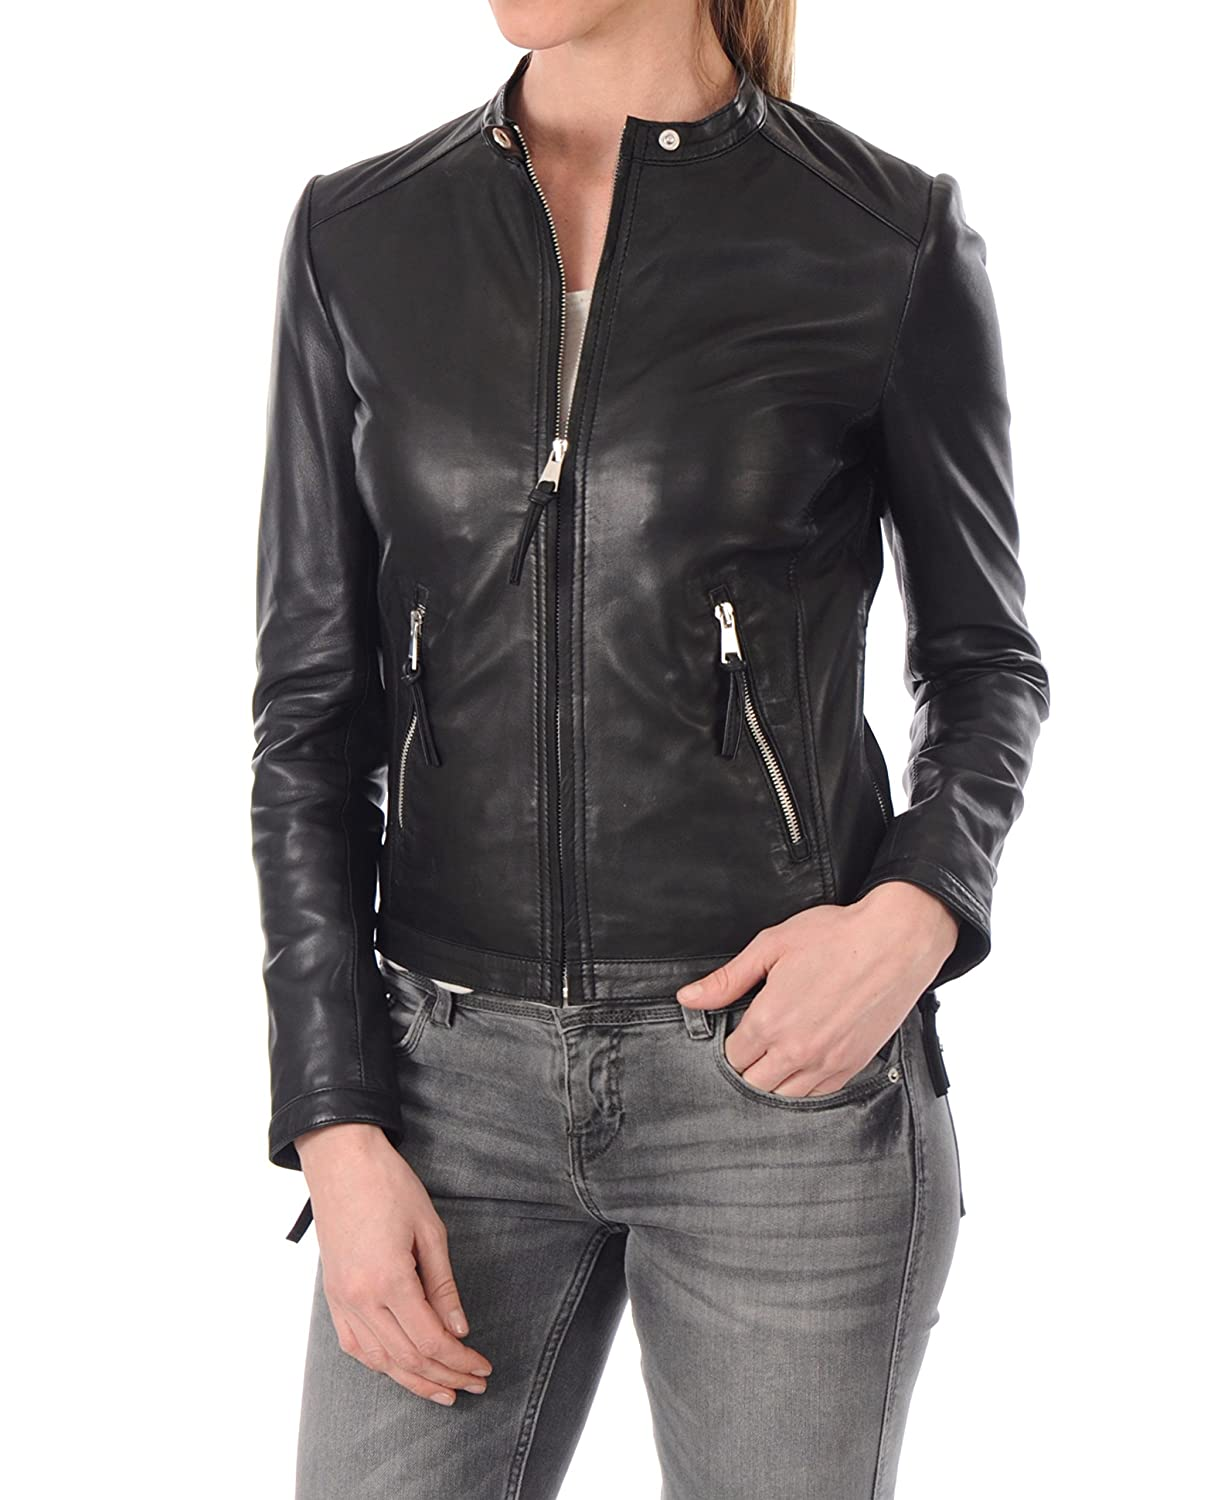 Black17rc DOLLY LAMB 100% Leather Jacket for Women  Round Collar, Slim Fit & Quilted  Moto, Bomber, Biker Winter Casual Wear